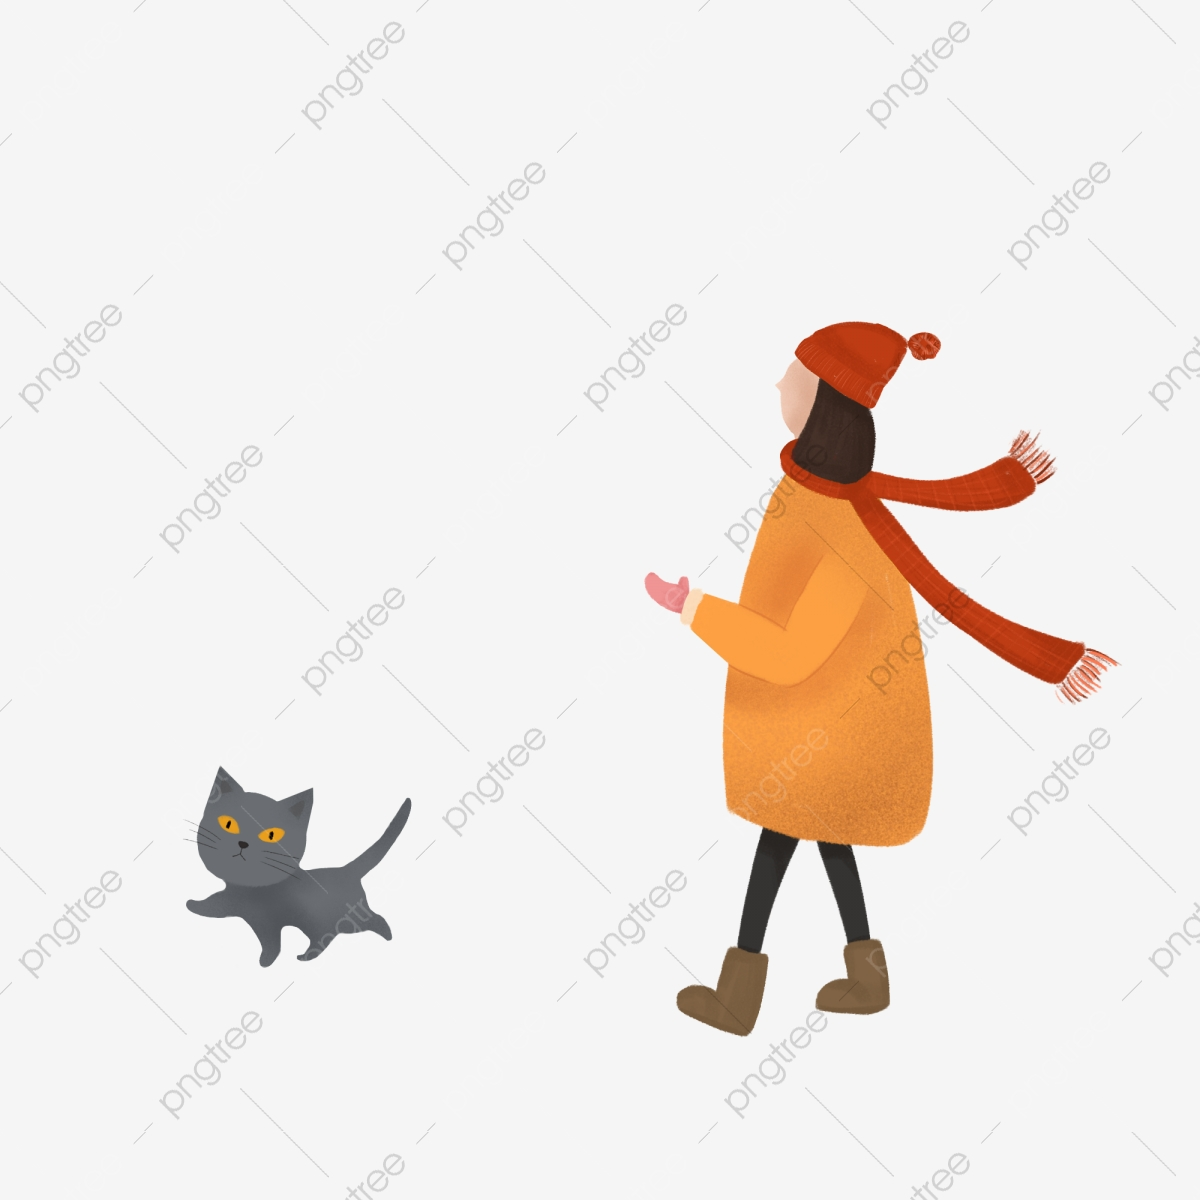 Walking Girl And Cat Hand Drawn Design Hand Painted Illustration Walking Png Transparent Clipart Image And Psd File For Free Download